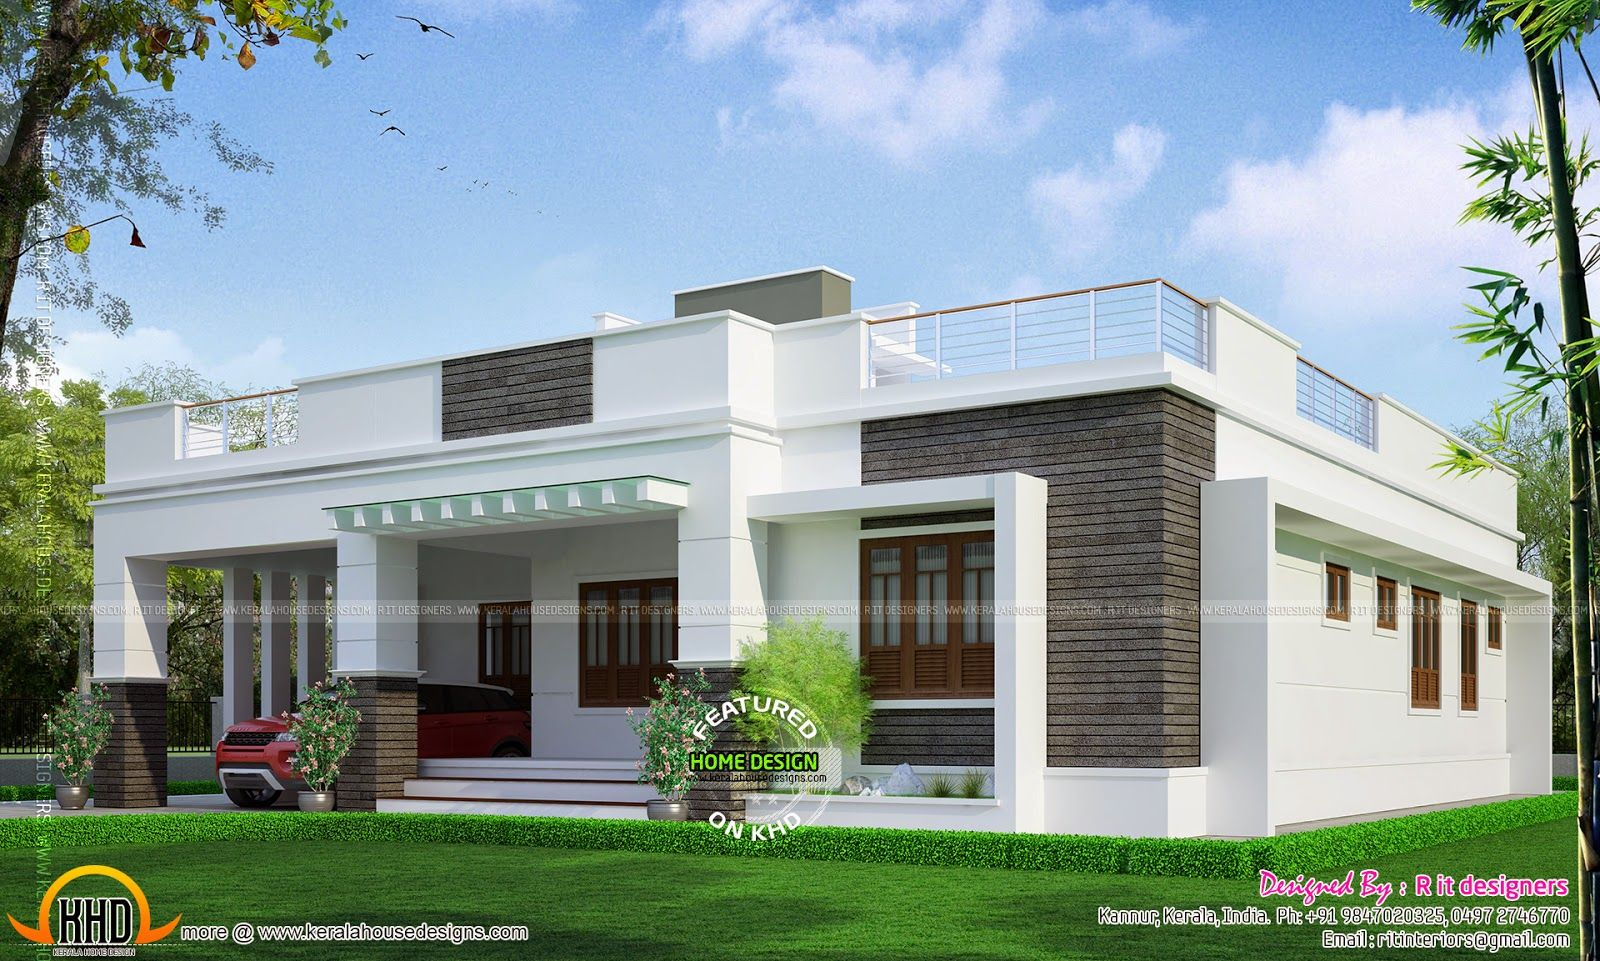 U20b910 Lakhs Budget Smallbudget Single Floor House In An Area Of 812 Square  Feet By Haris Mohammed, Kasaragod, Kerala. | House Elevation Indian Single  ...